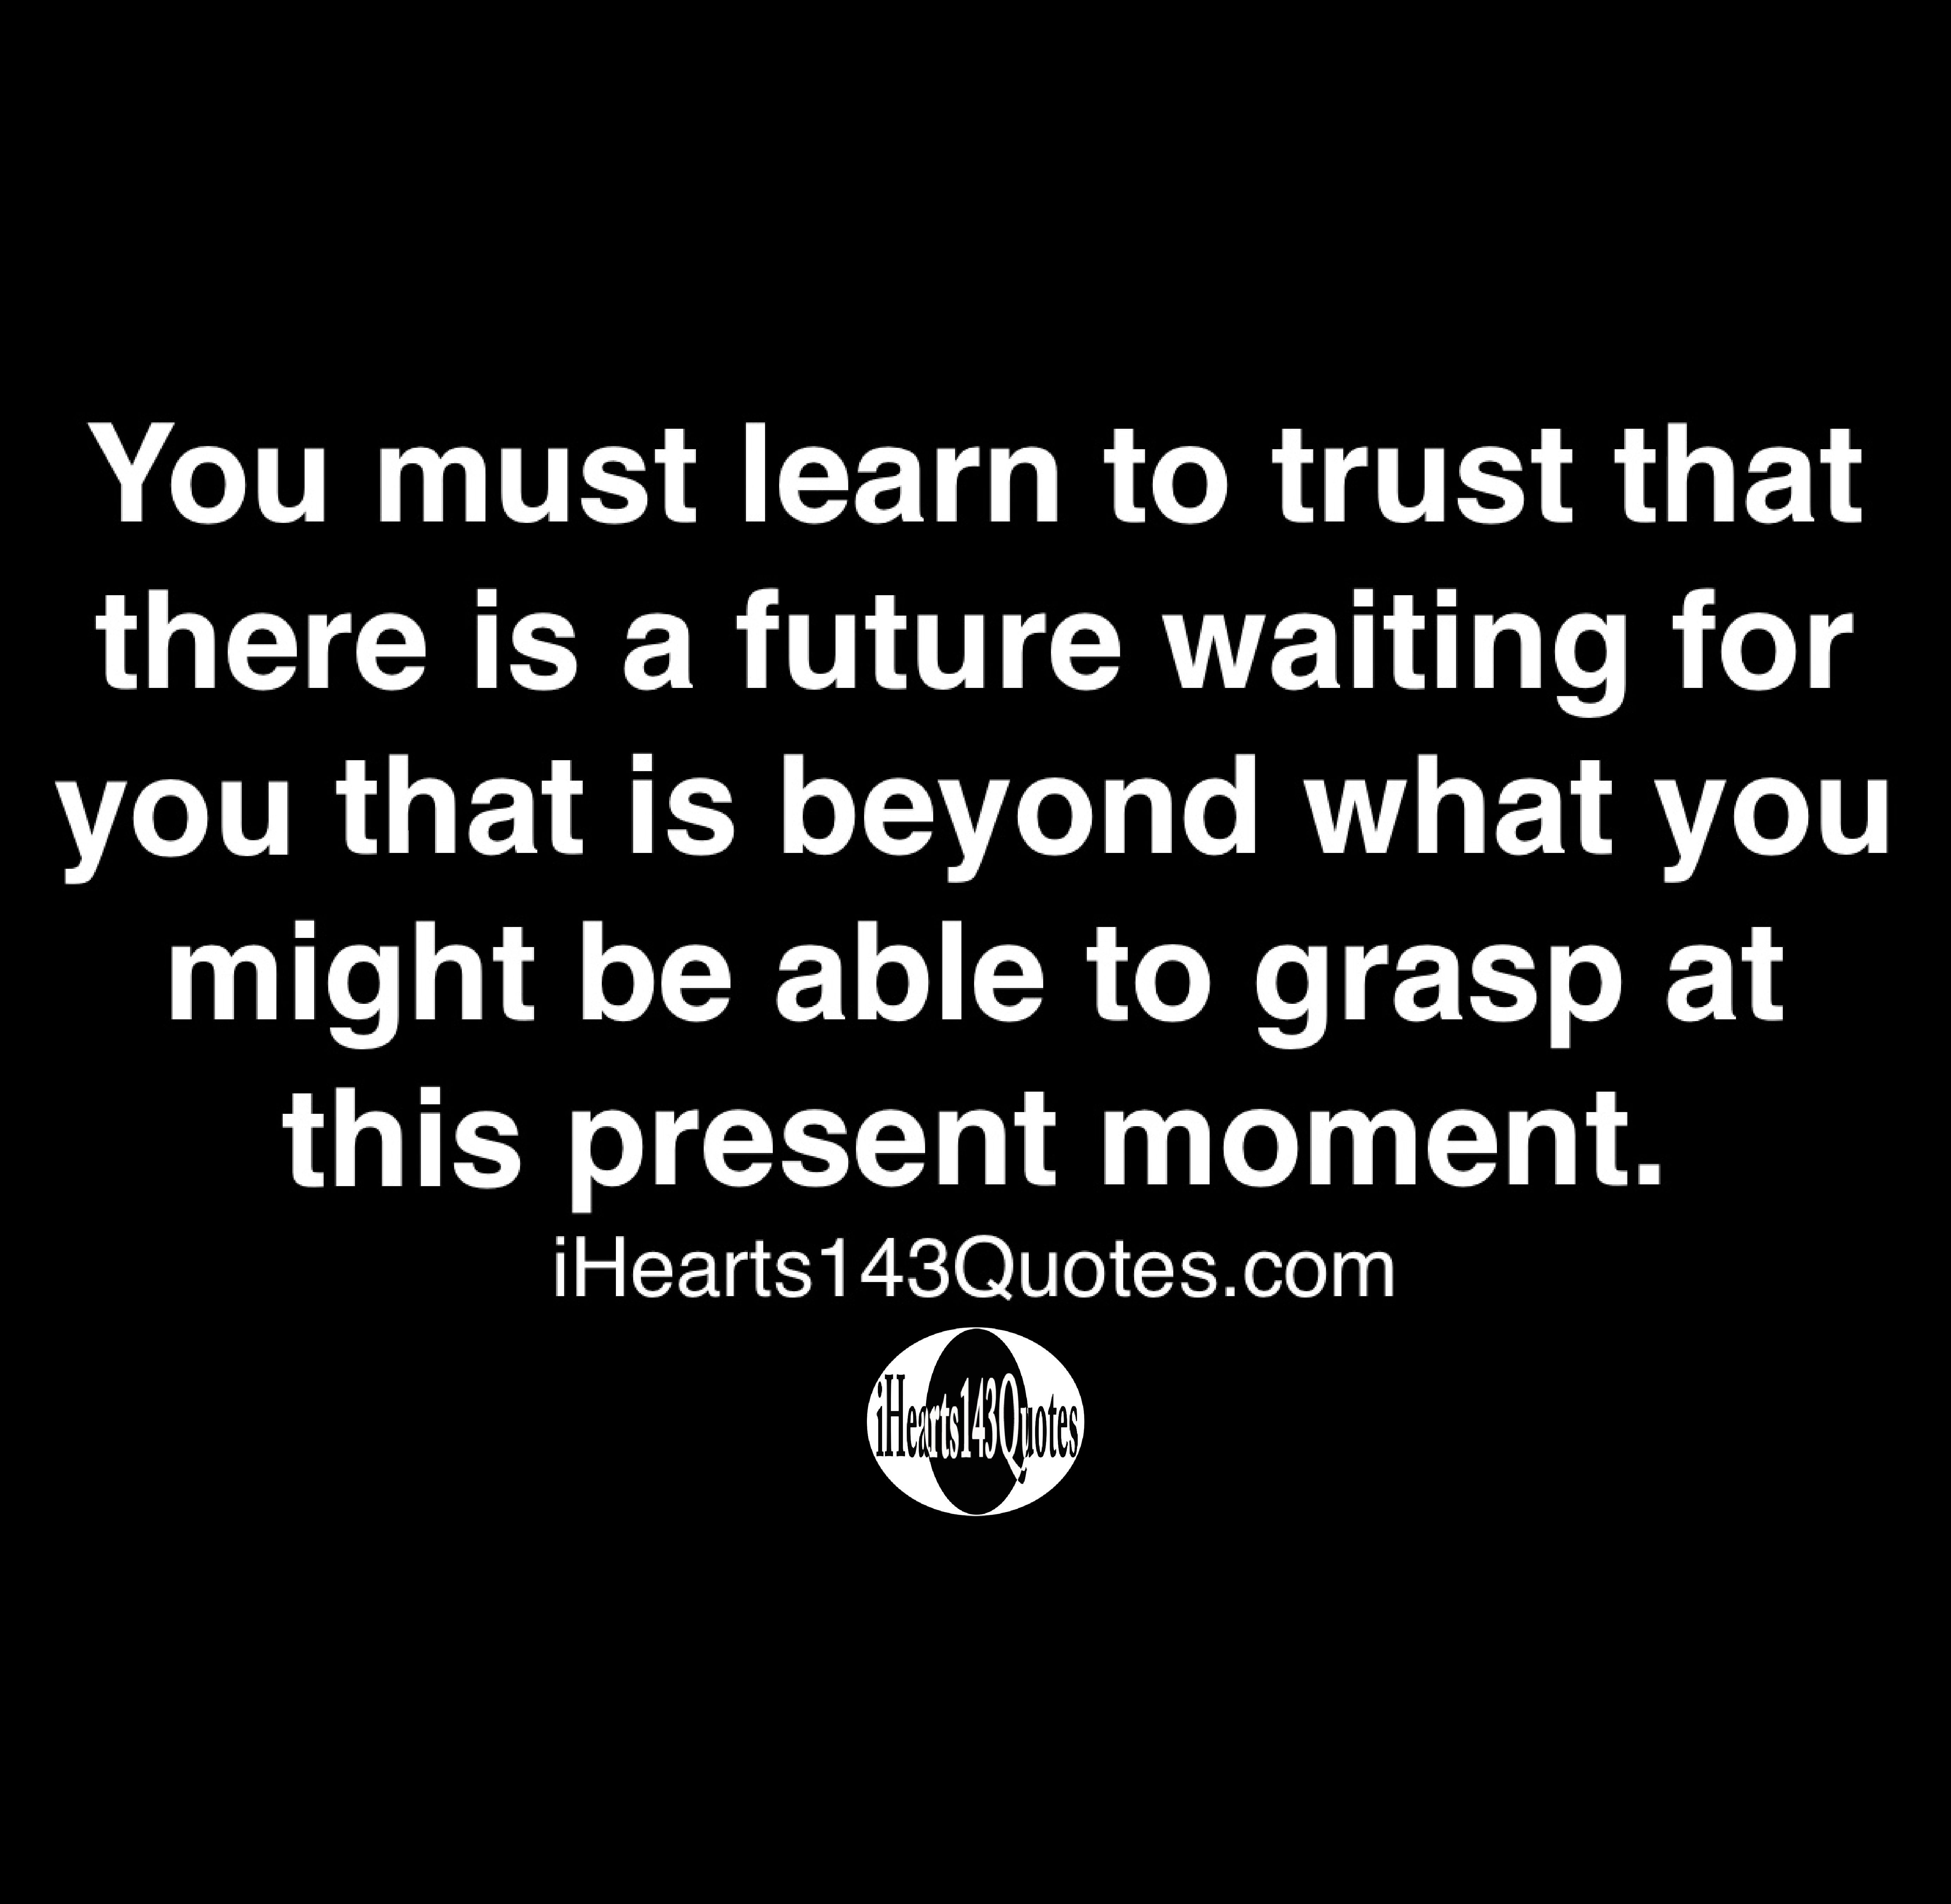 You must learn to trust that there is a future waiting for you that is beyond what you might be able to grasp at this present moment - Quotes